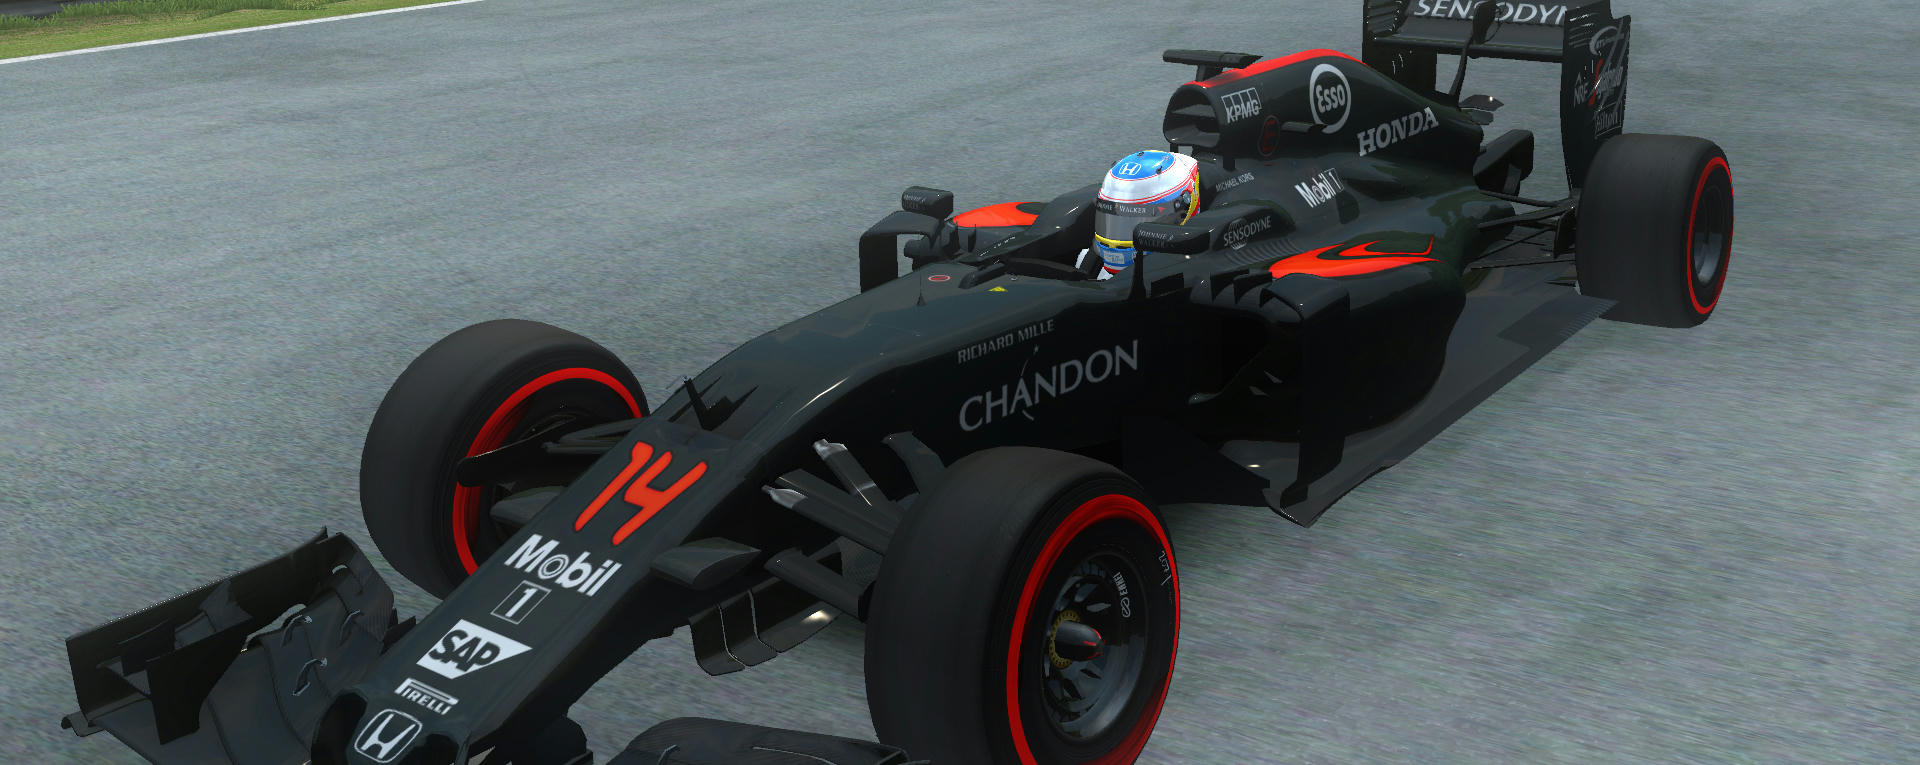 Updated Mclaren Honda Mp4-31 skins Mddiuk1pi9rche0zg